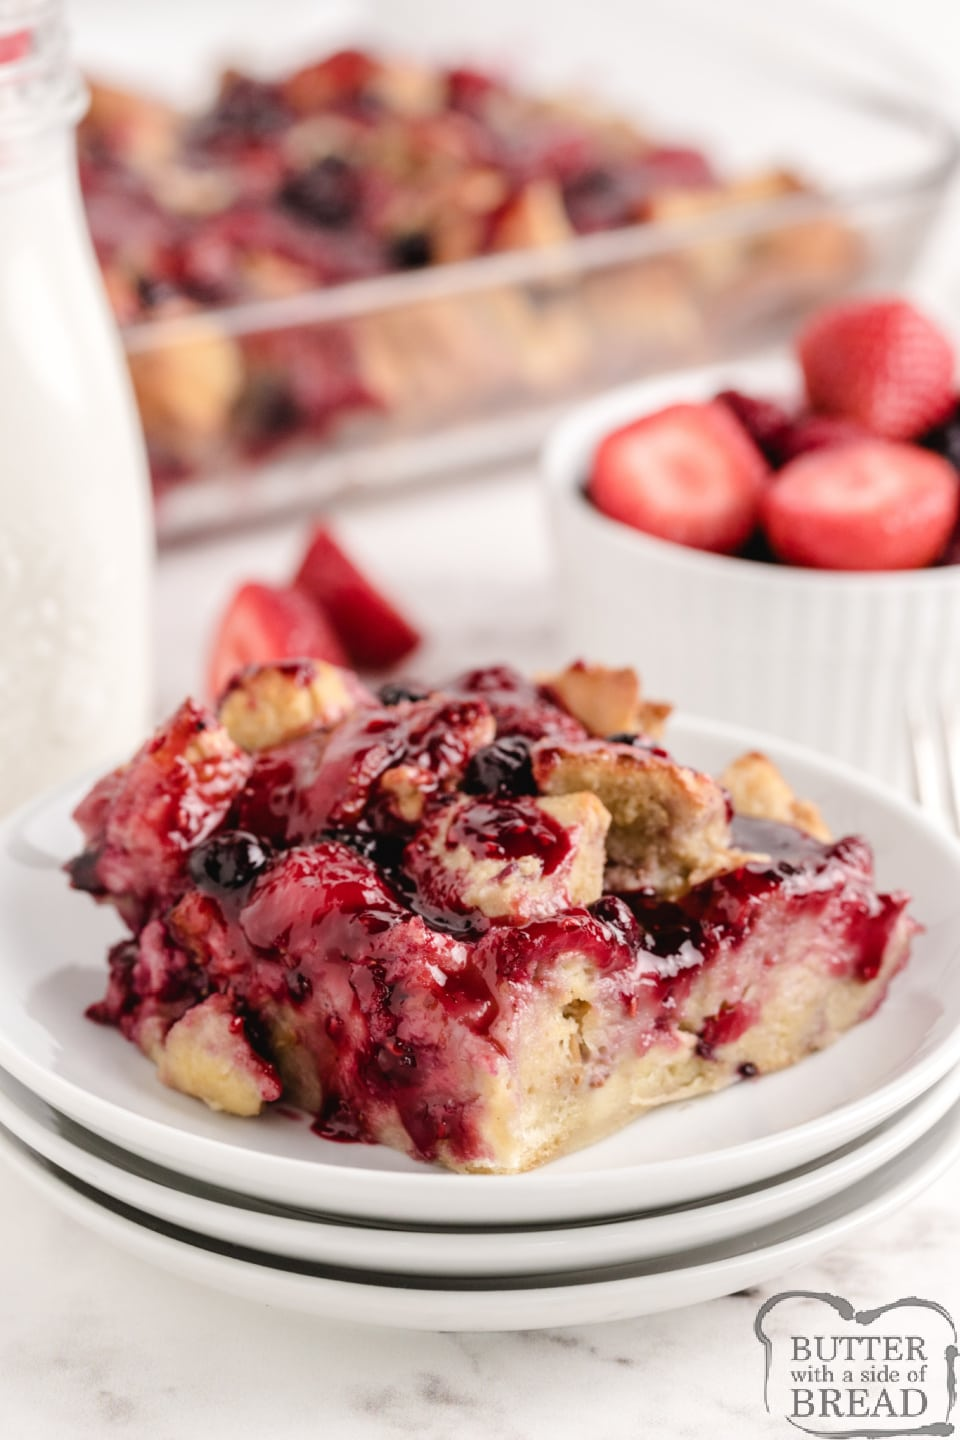 Berry French Toast Bake is made with french bread, eggs, cream, fresh strawberries and frozen mixed berries. This baked french toast recipe is simple, delicious and perfect for breakfast or dinner!